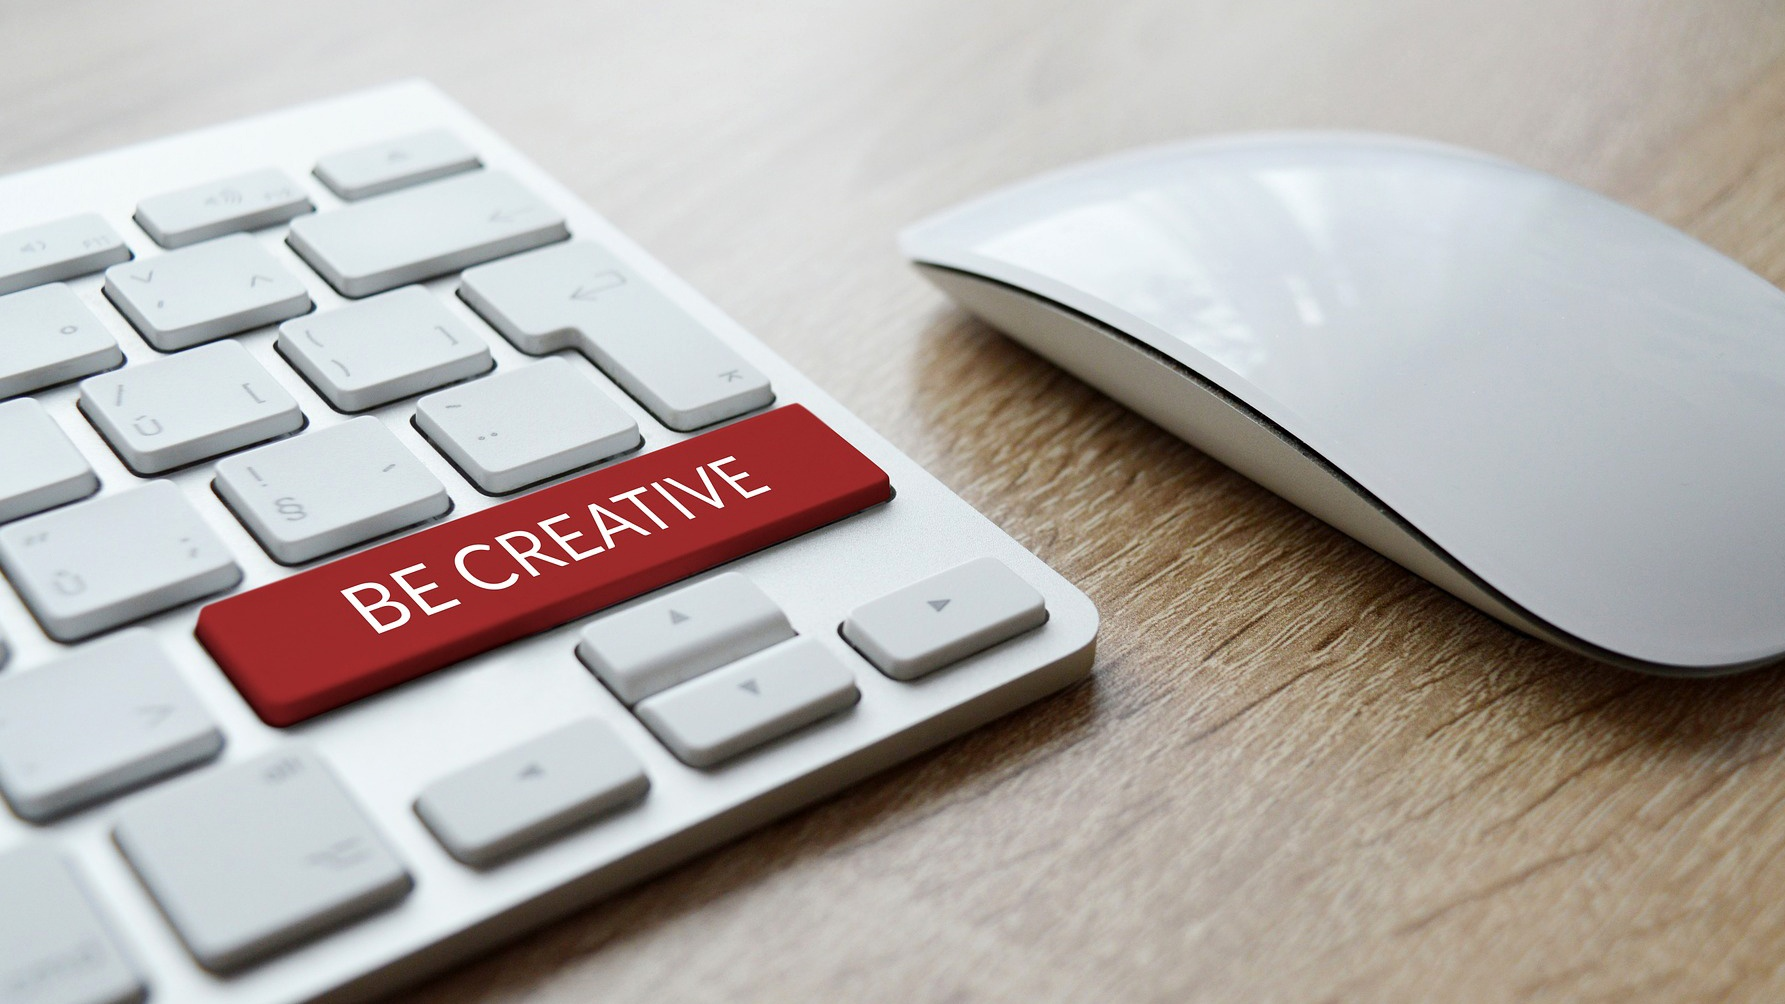 """A closeup of a keyboard featuring a red """"Be Creative"""" button"""